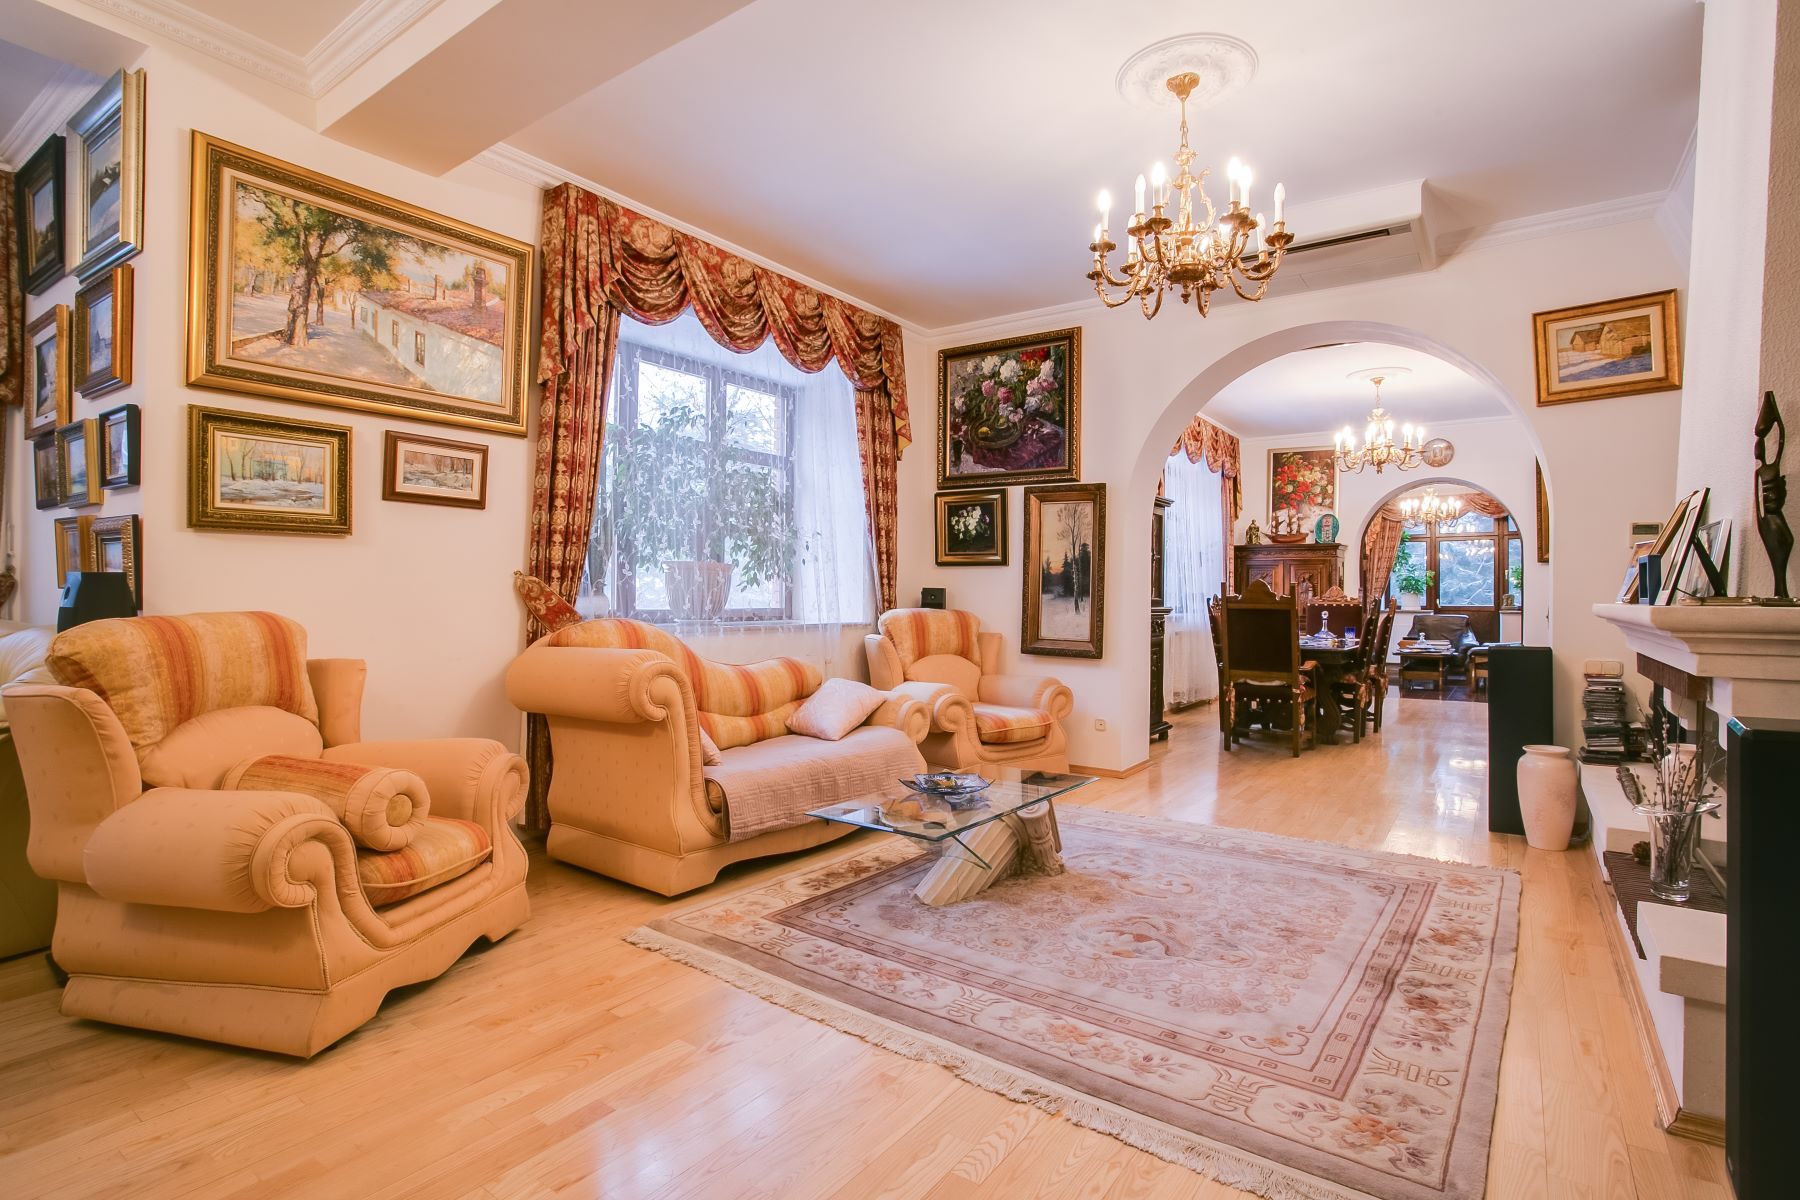 Single Family Home for Sale at The Village of Artists Moscow, Moscow City, Russia